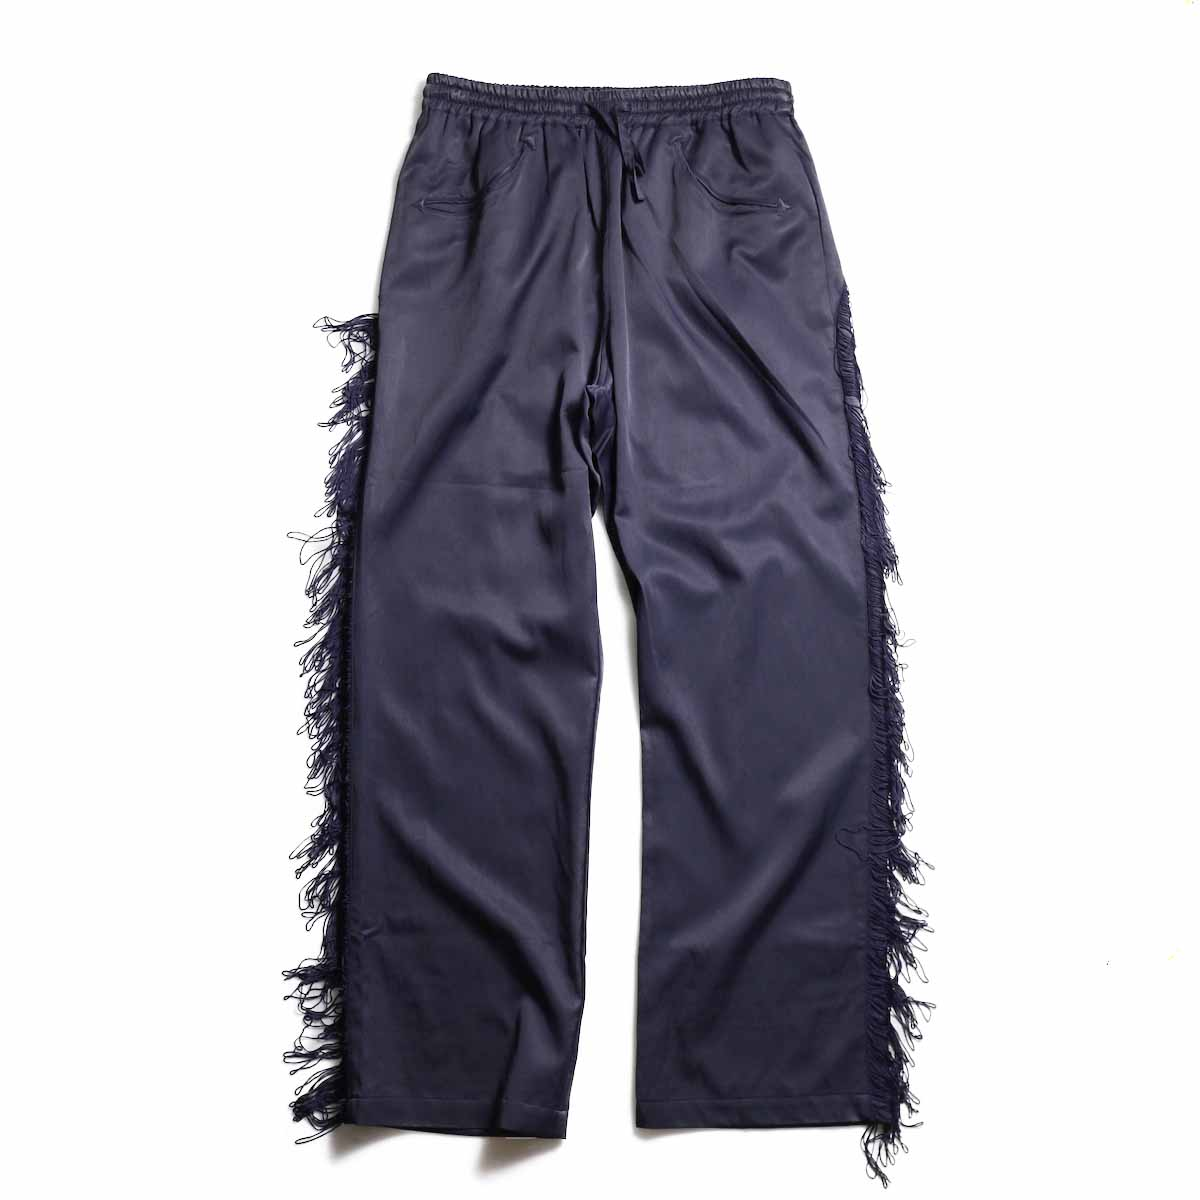 Needles / Fringe Cowboy Pant -R/C Twill Sateen (Purple)